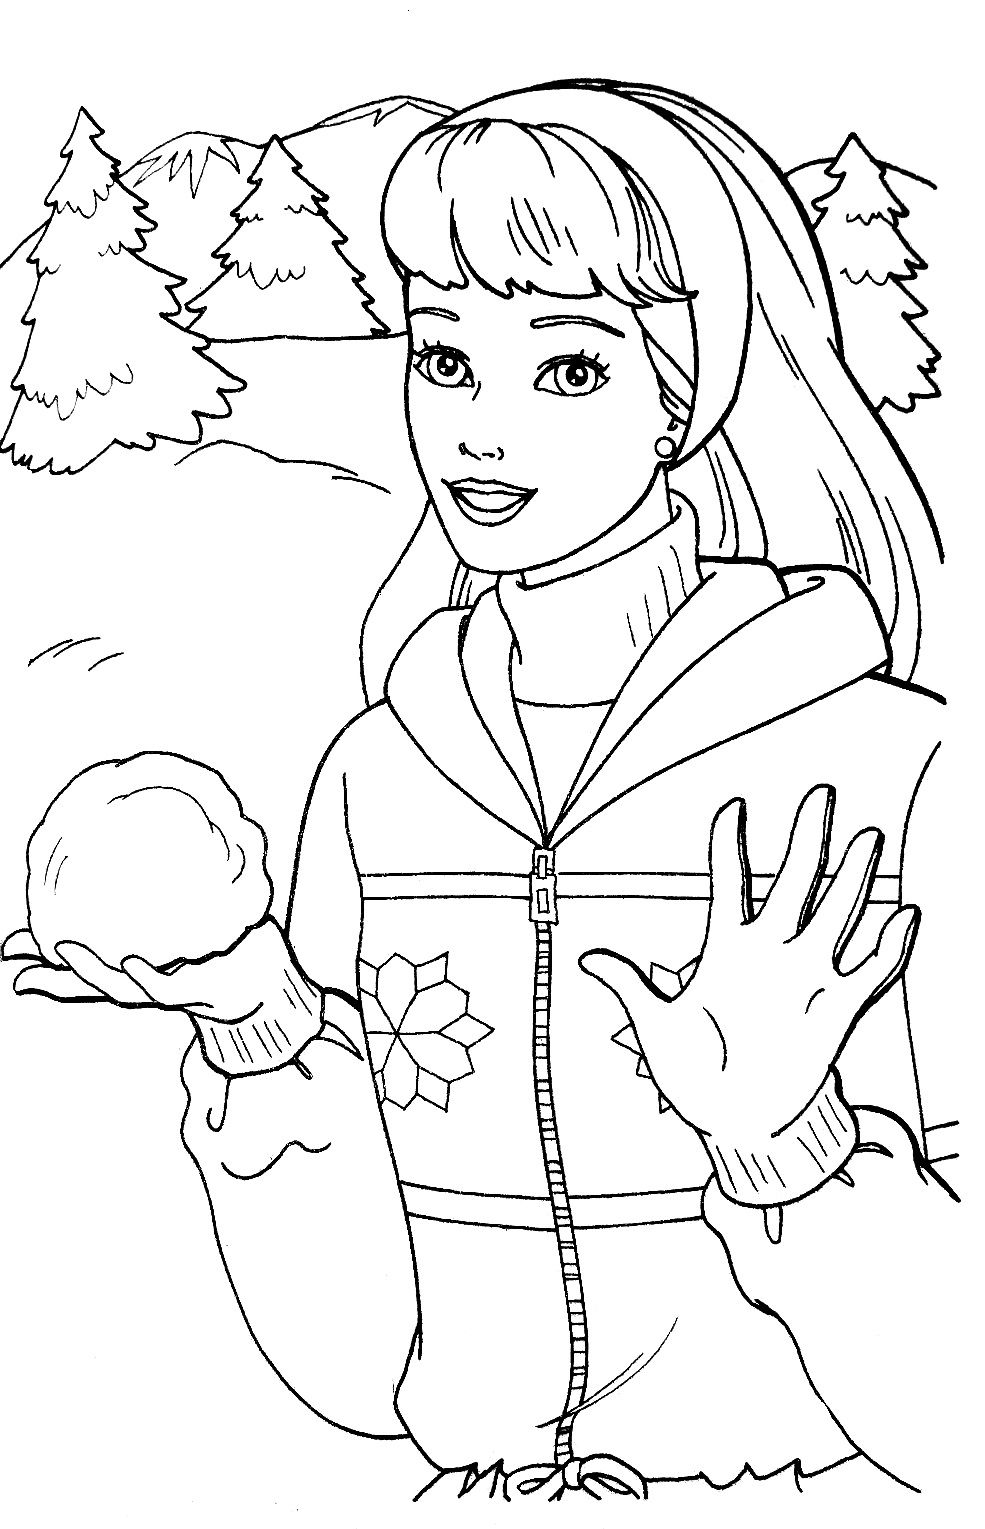 Pin by Tsvetelina on Barbie coloring part 2 Barbie